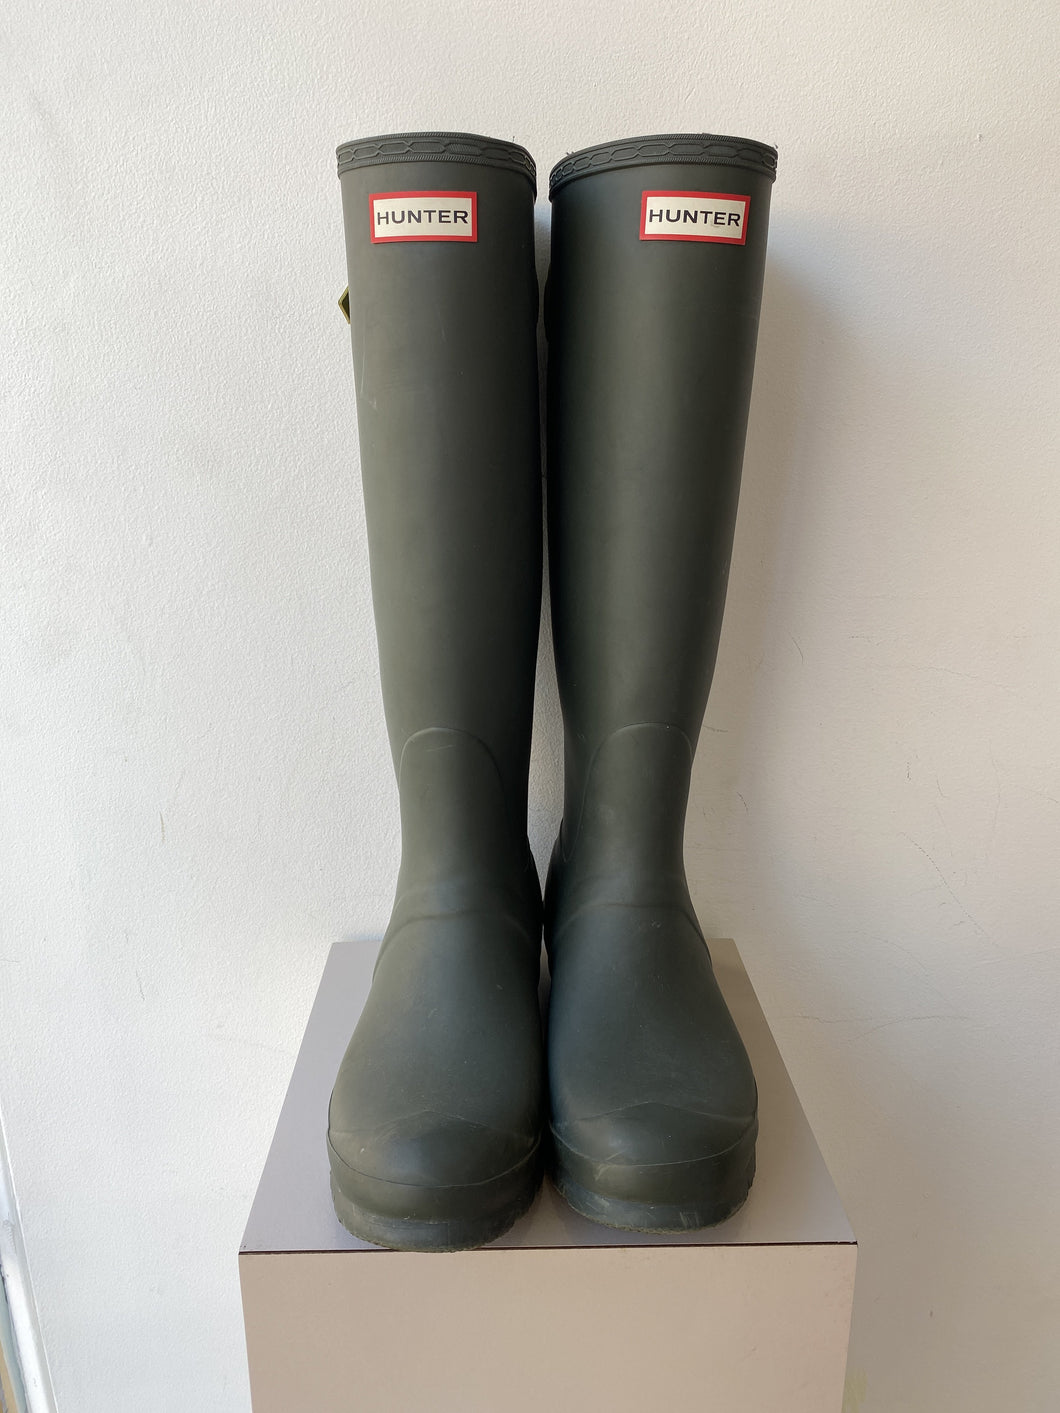 Hunter olive adjustable tall rain boots size 9 - My Girlfriend's Wardrobe York Pa